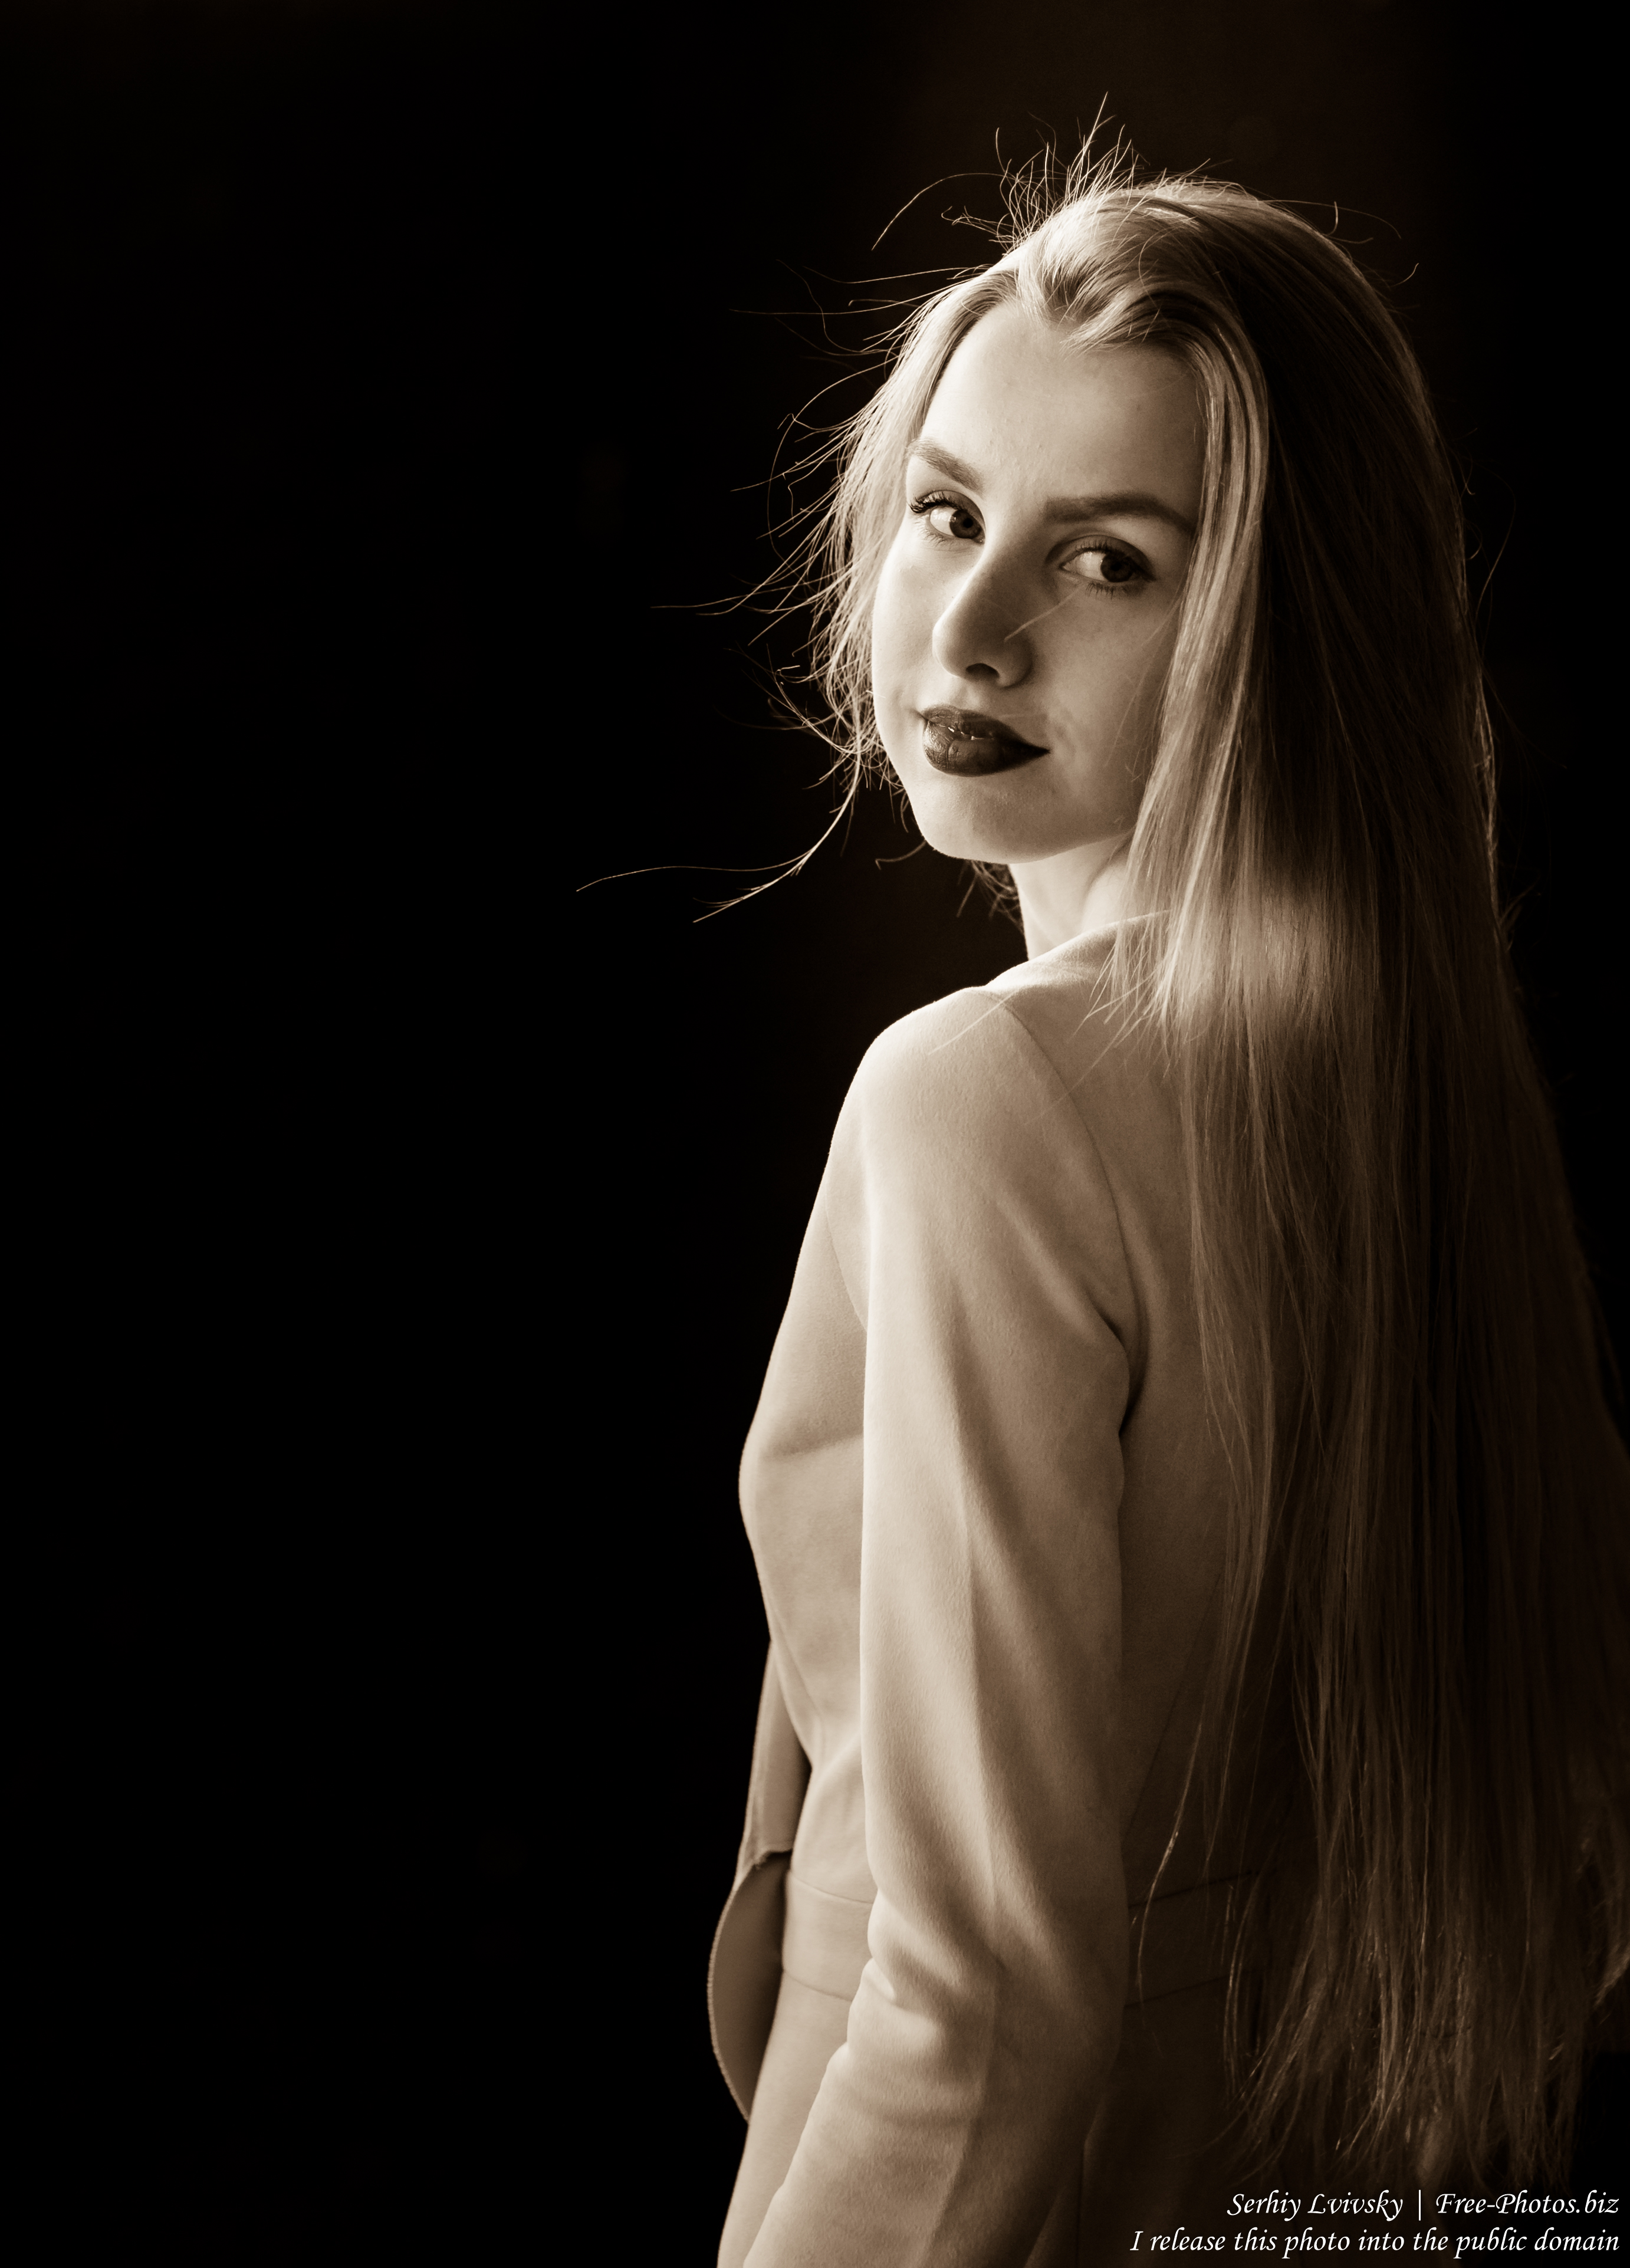 Lila - a 21-year-old natural blond girl photographed in May 2017 by Serhiy Lvivsky, picture 2